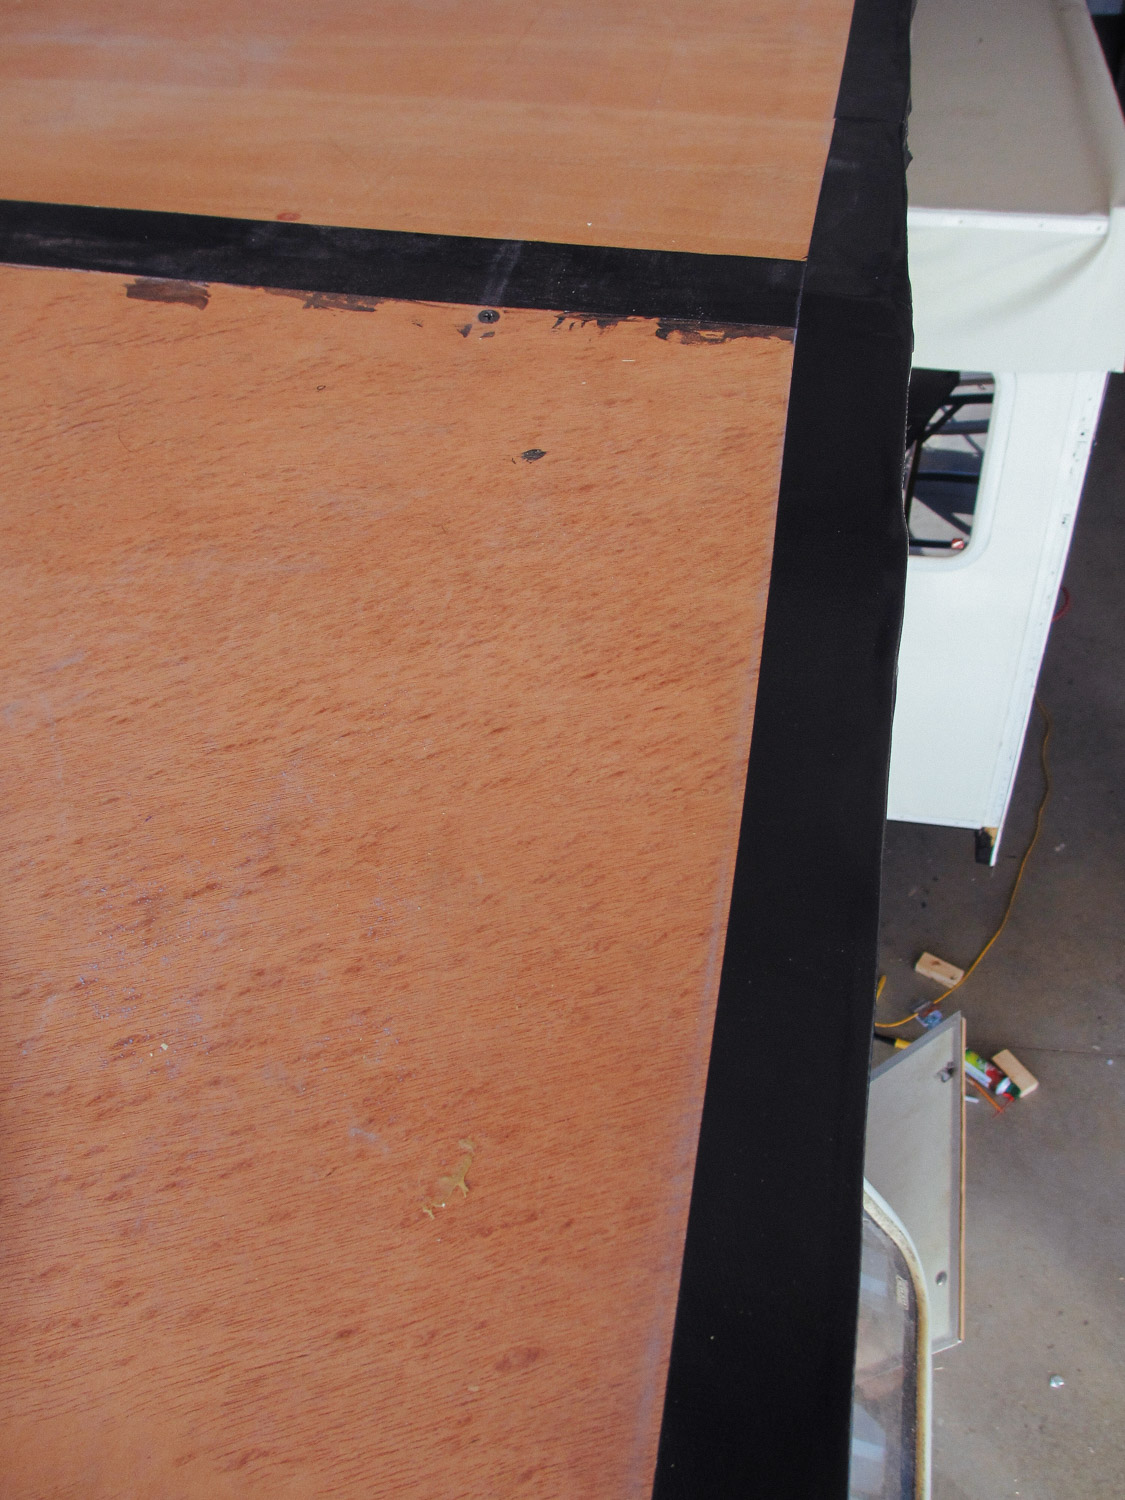 We also covered the rough plywood edges with Gorilla tape.